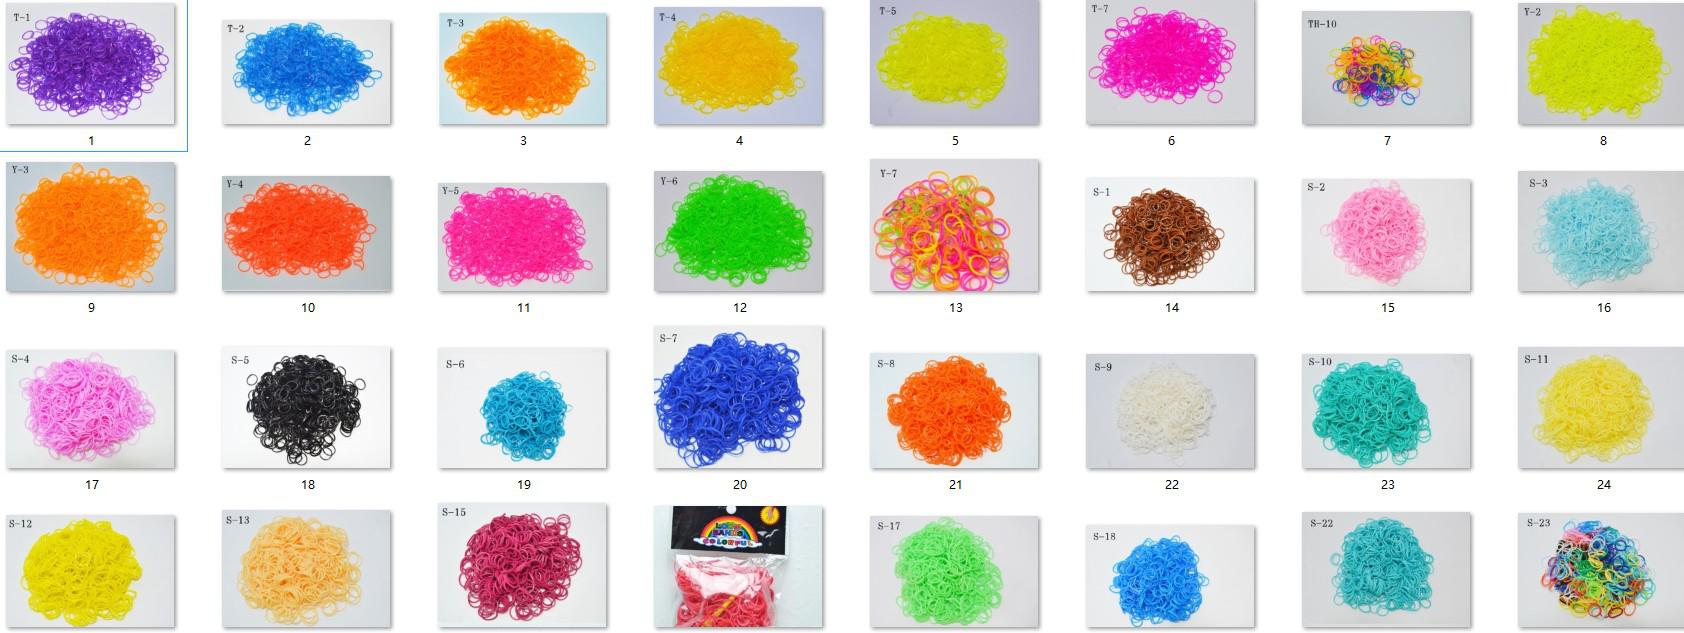 Pick UP 32Colors Rainbow Loom Bands Refill Kit DIY Wrist Bands Dual Color Bracelet for kids ( 600 pcs bands + 24 pcs C or S clips )